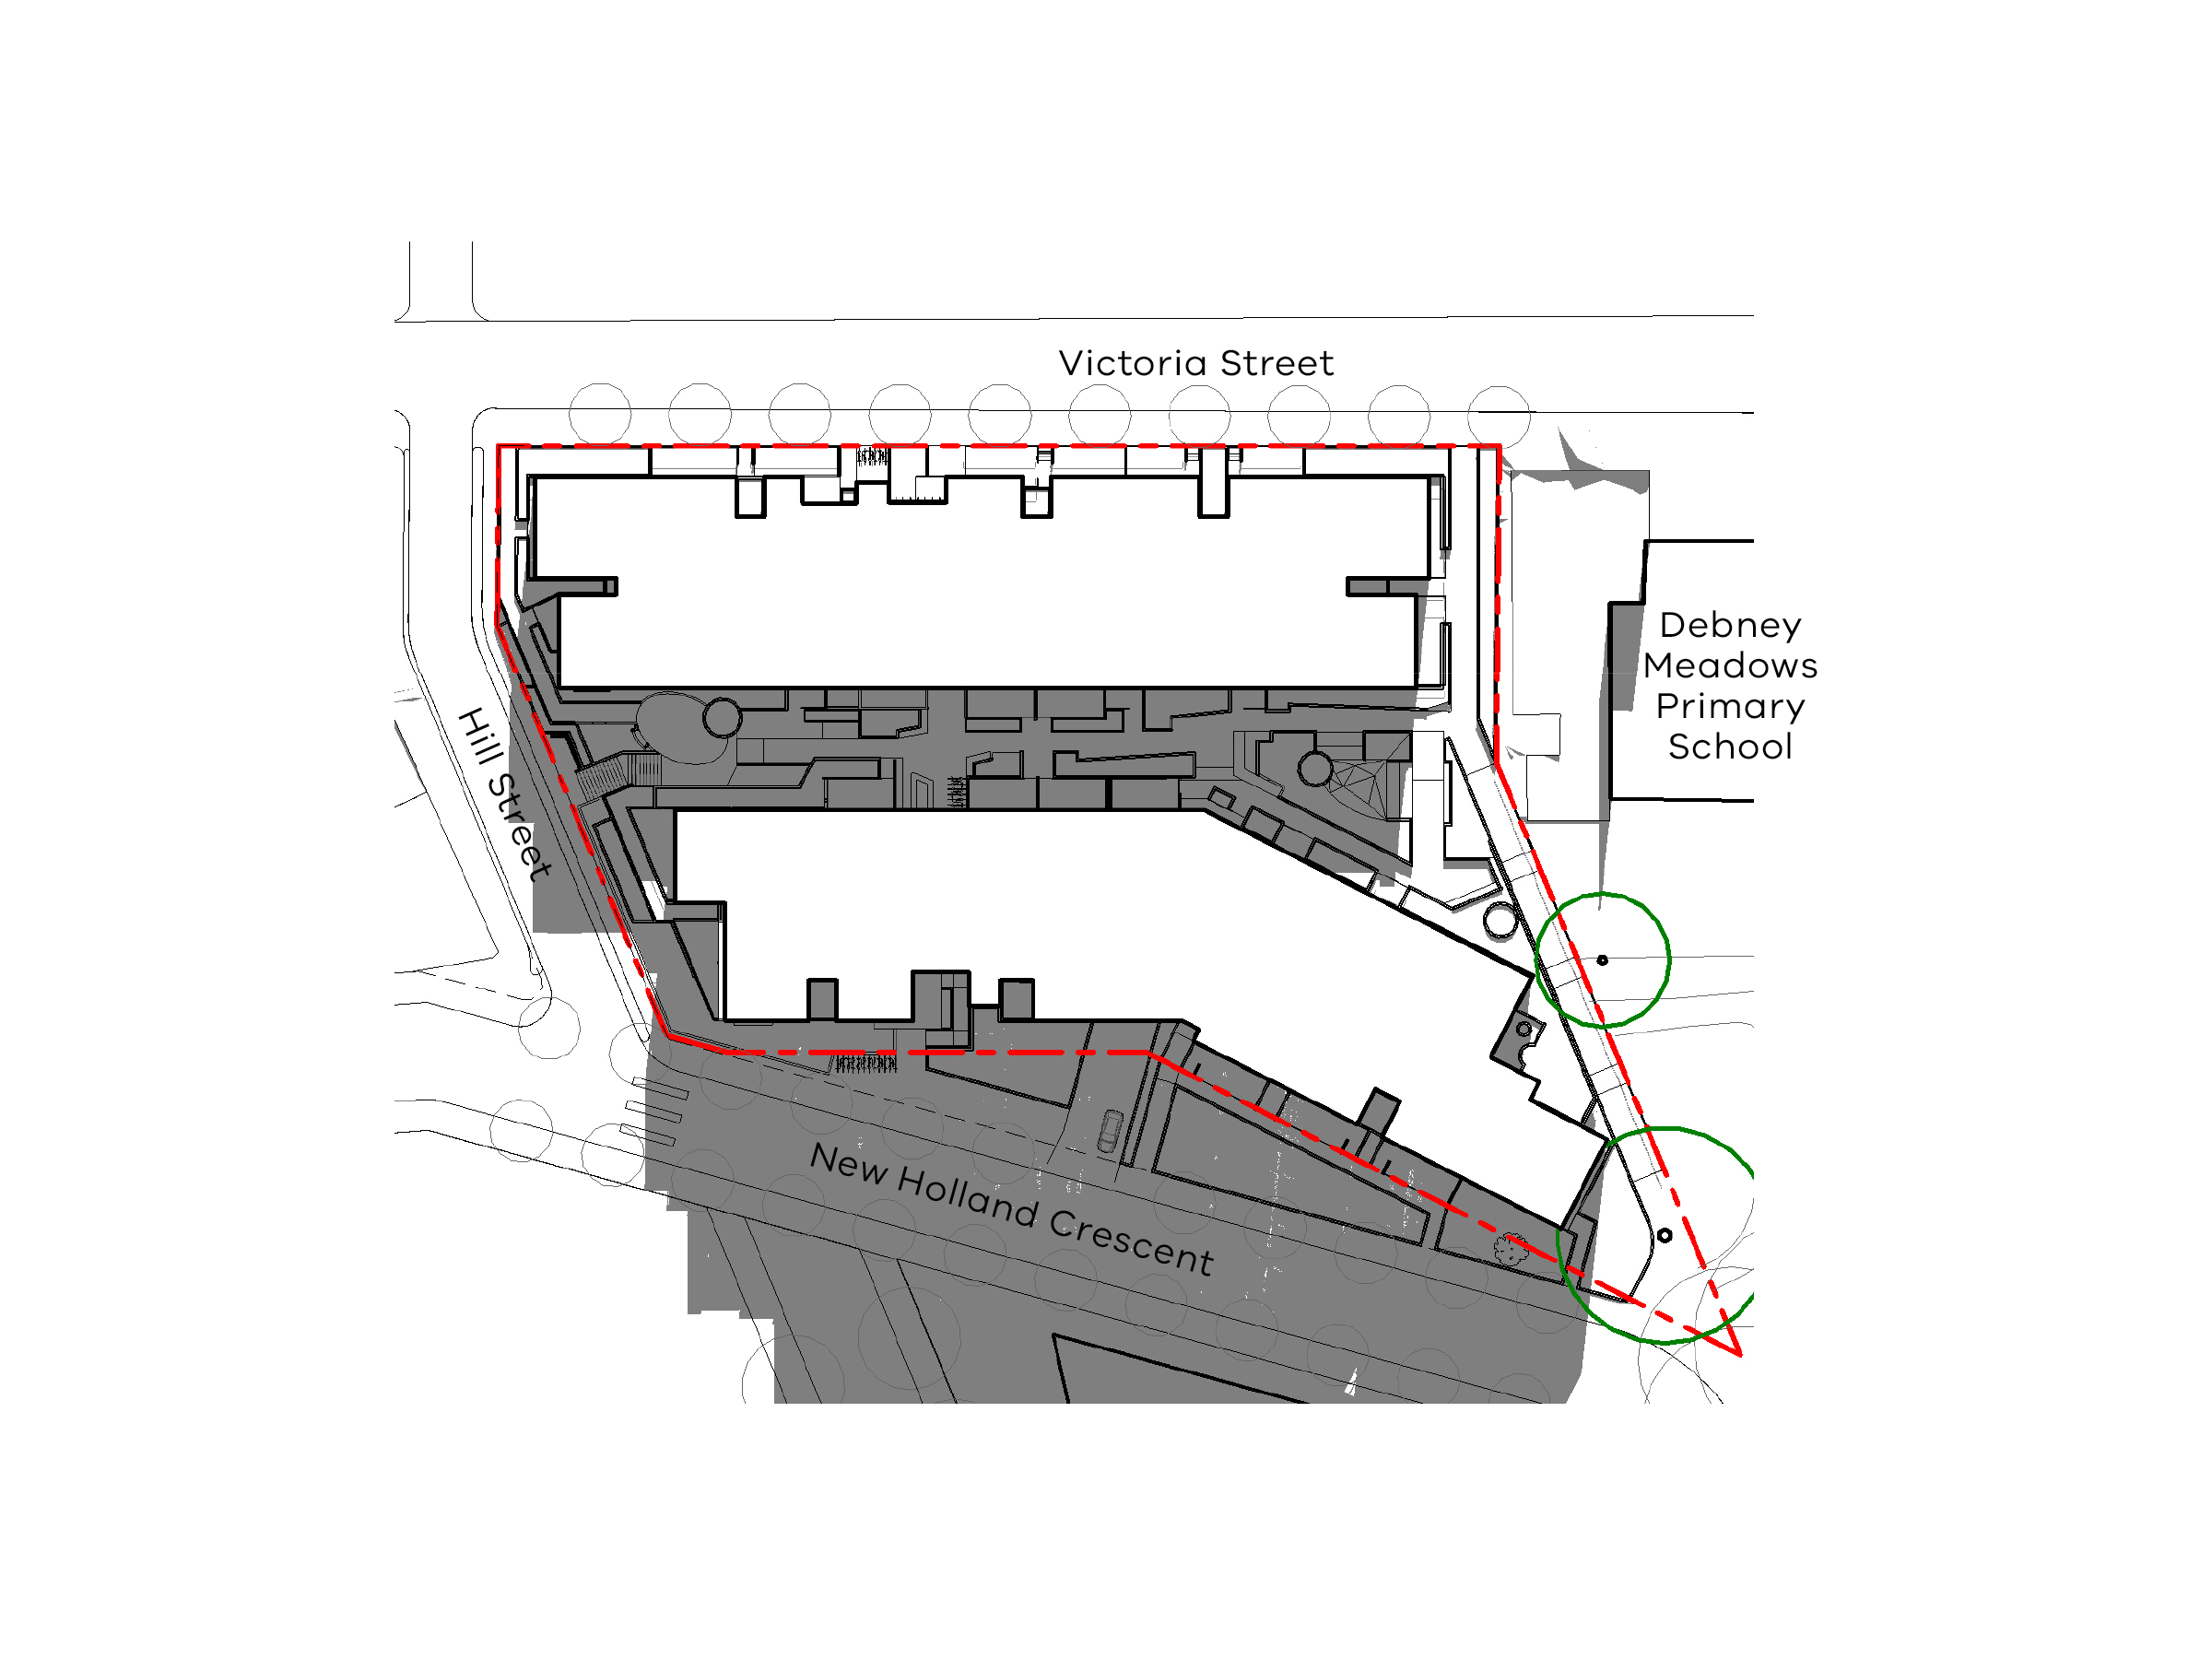 Diagram showing the shadows created by the north site of the new development in September at 3pm